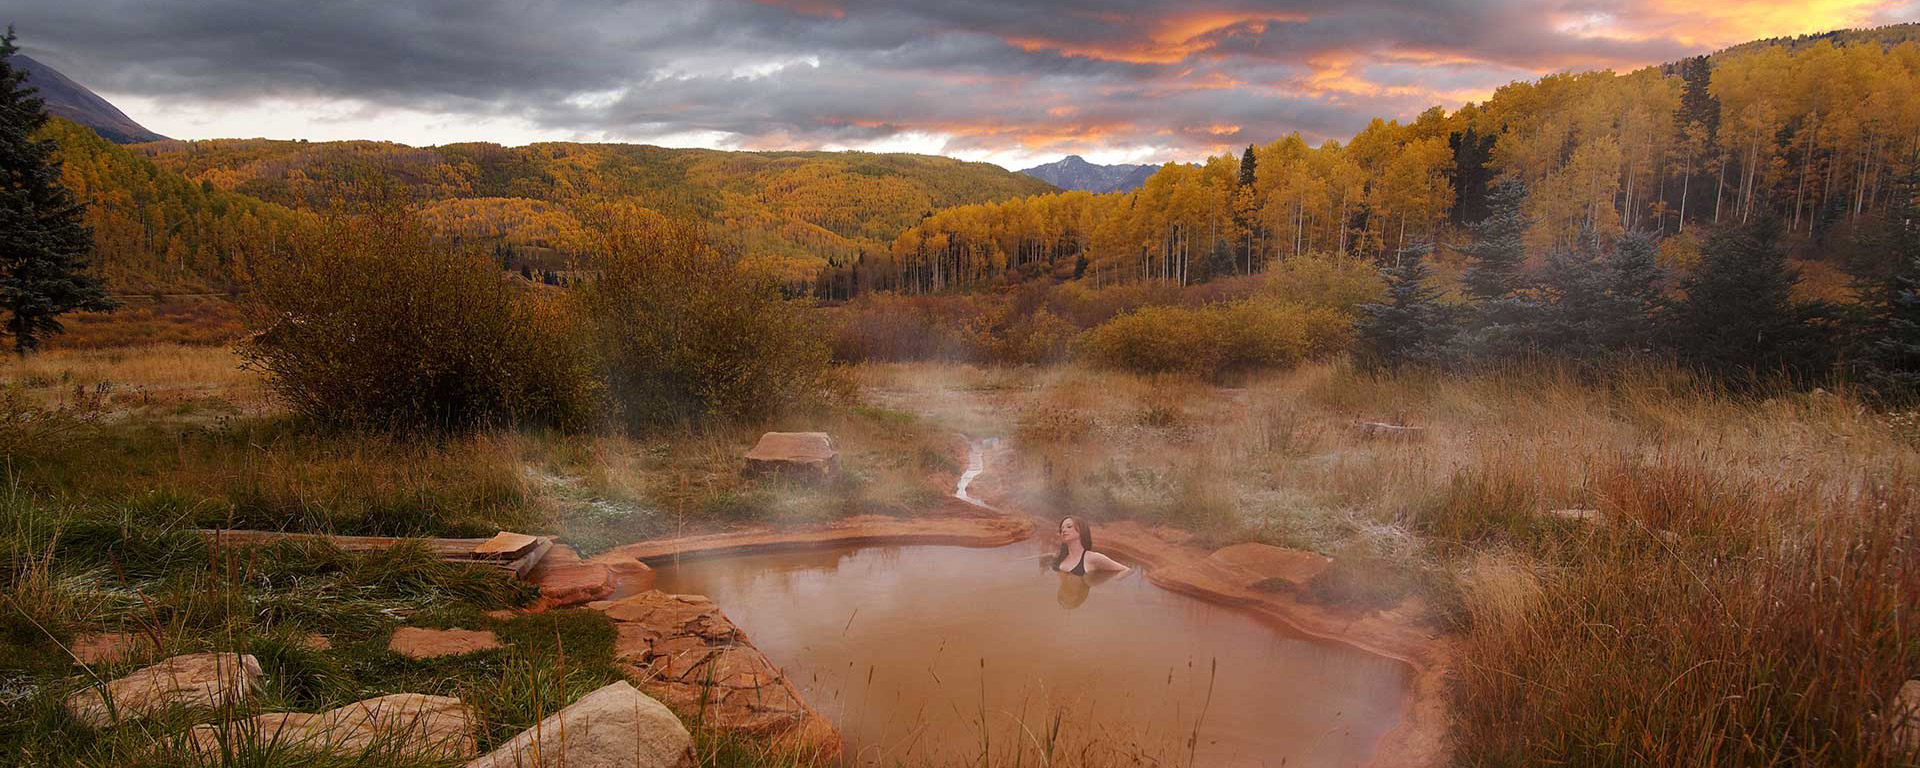 Dunton Hot Springs - UNITED STATES